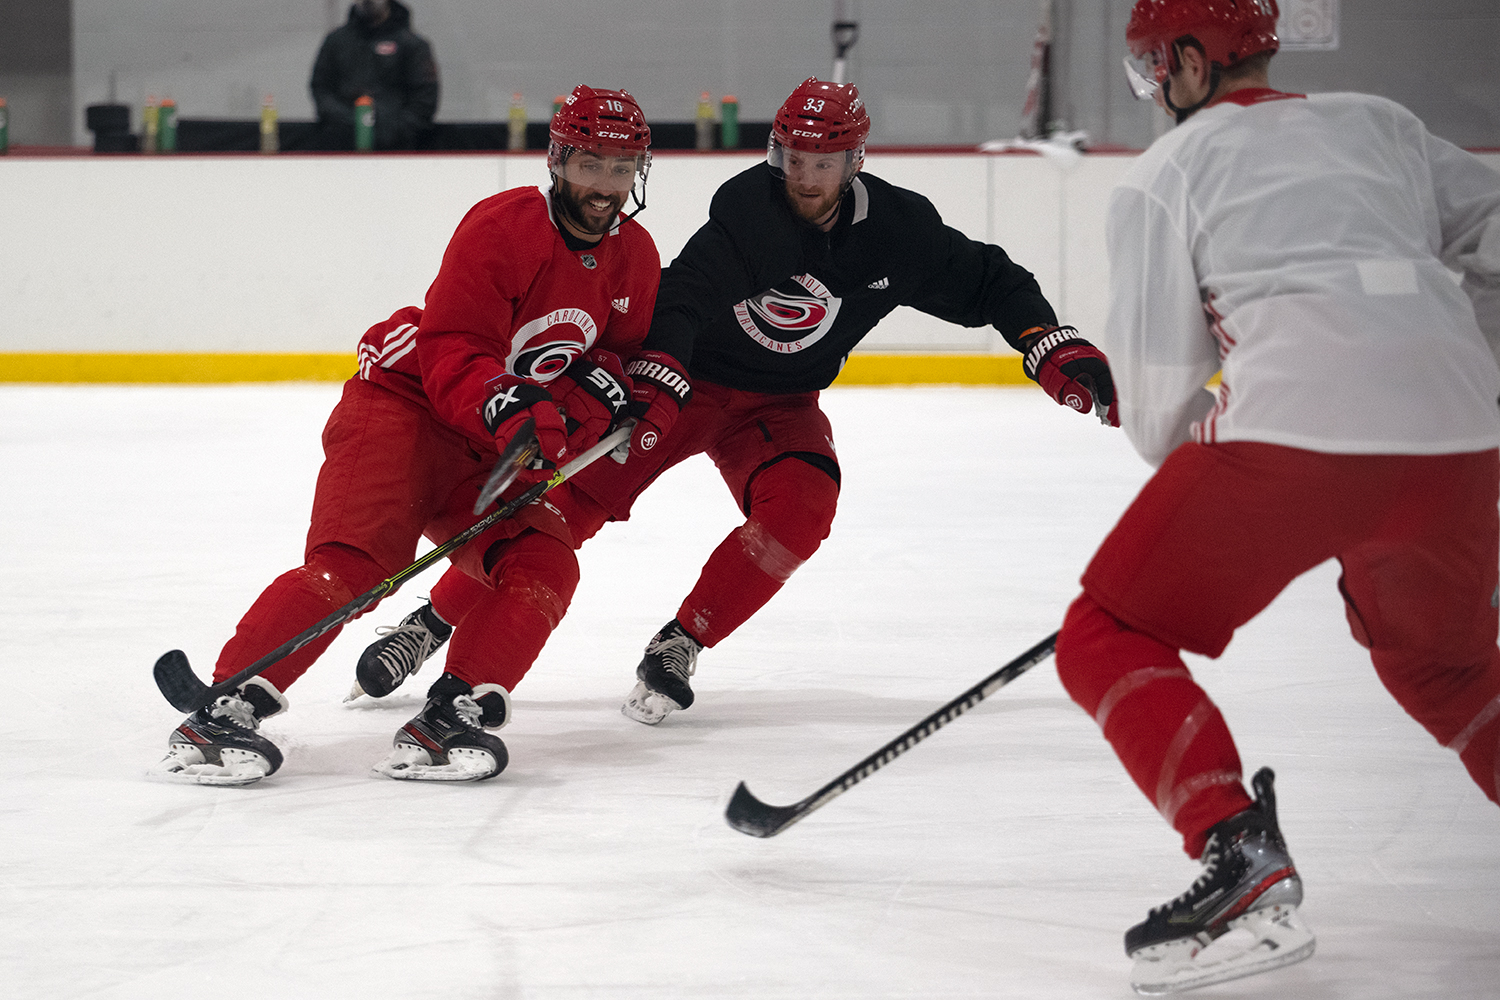 Vincent Trocheck and Joakim Ryan vie for the puck during day three of training camp at Wake Competition Center, Jan. 6, 2021.